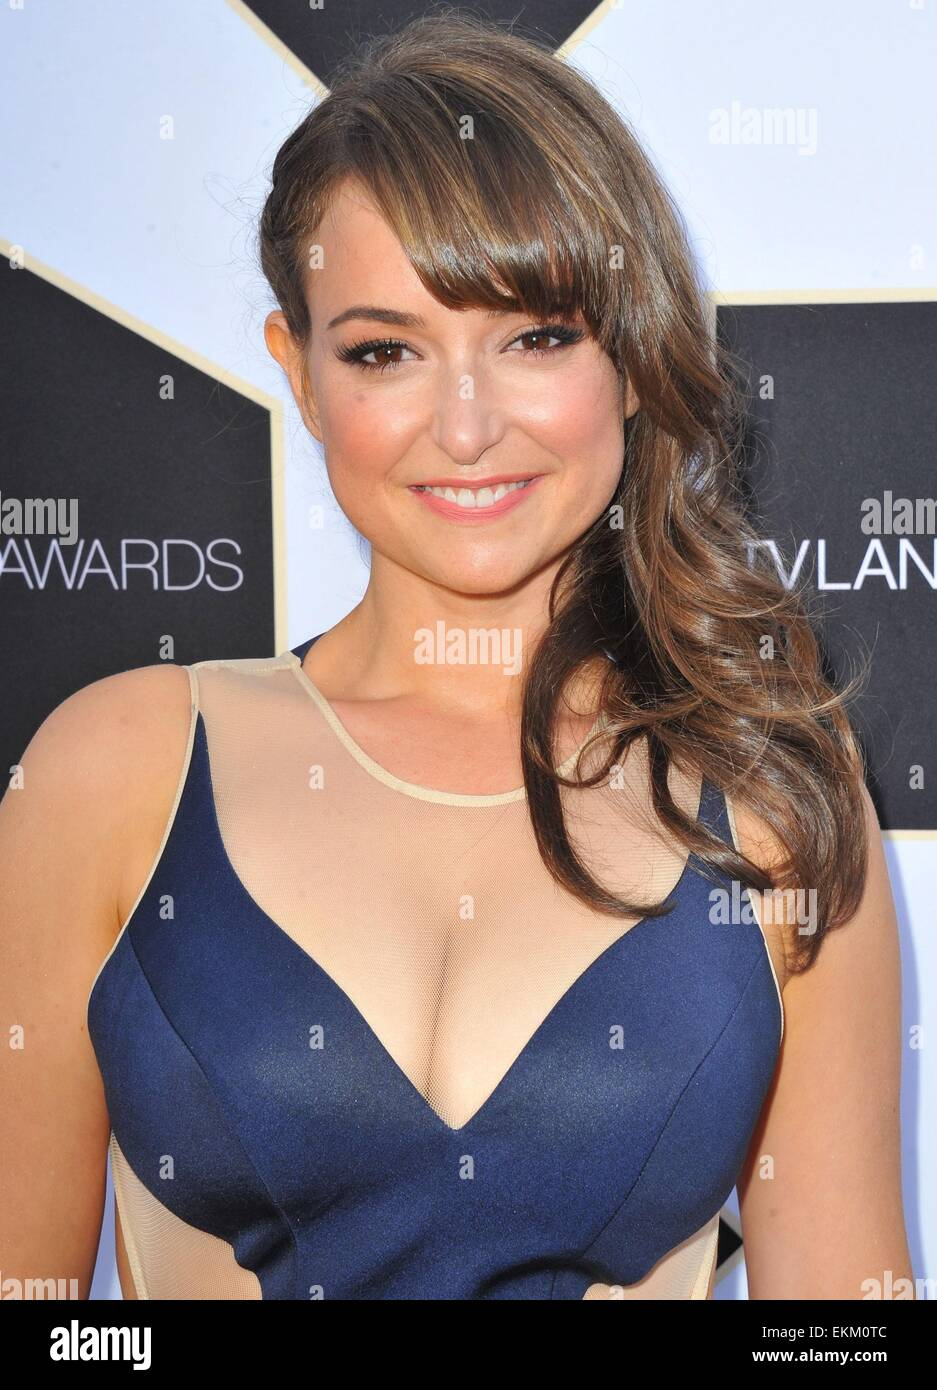 2019 Milana Vayntrub nudes (28 photo), Ass, Sideboobs, Twitter, in bikini 2017